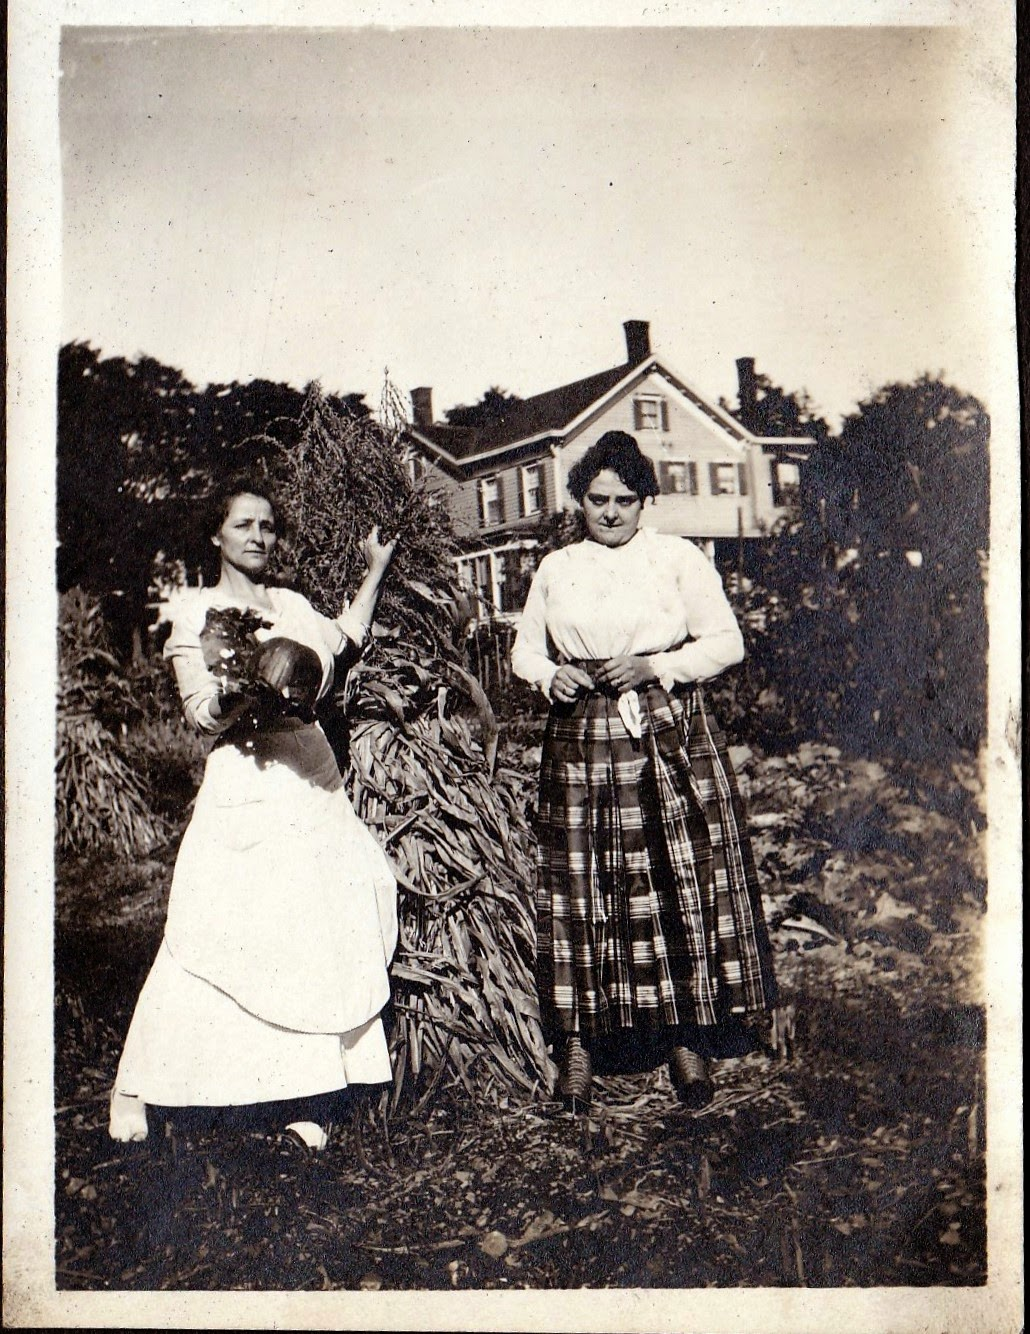 Liiian (Clark) Hewitt with her daughter Nellie Mae (Hewitt) Lee